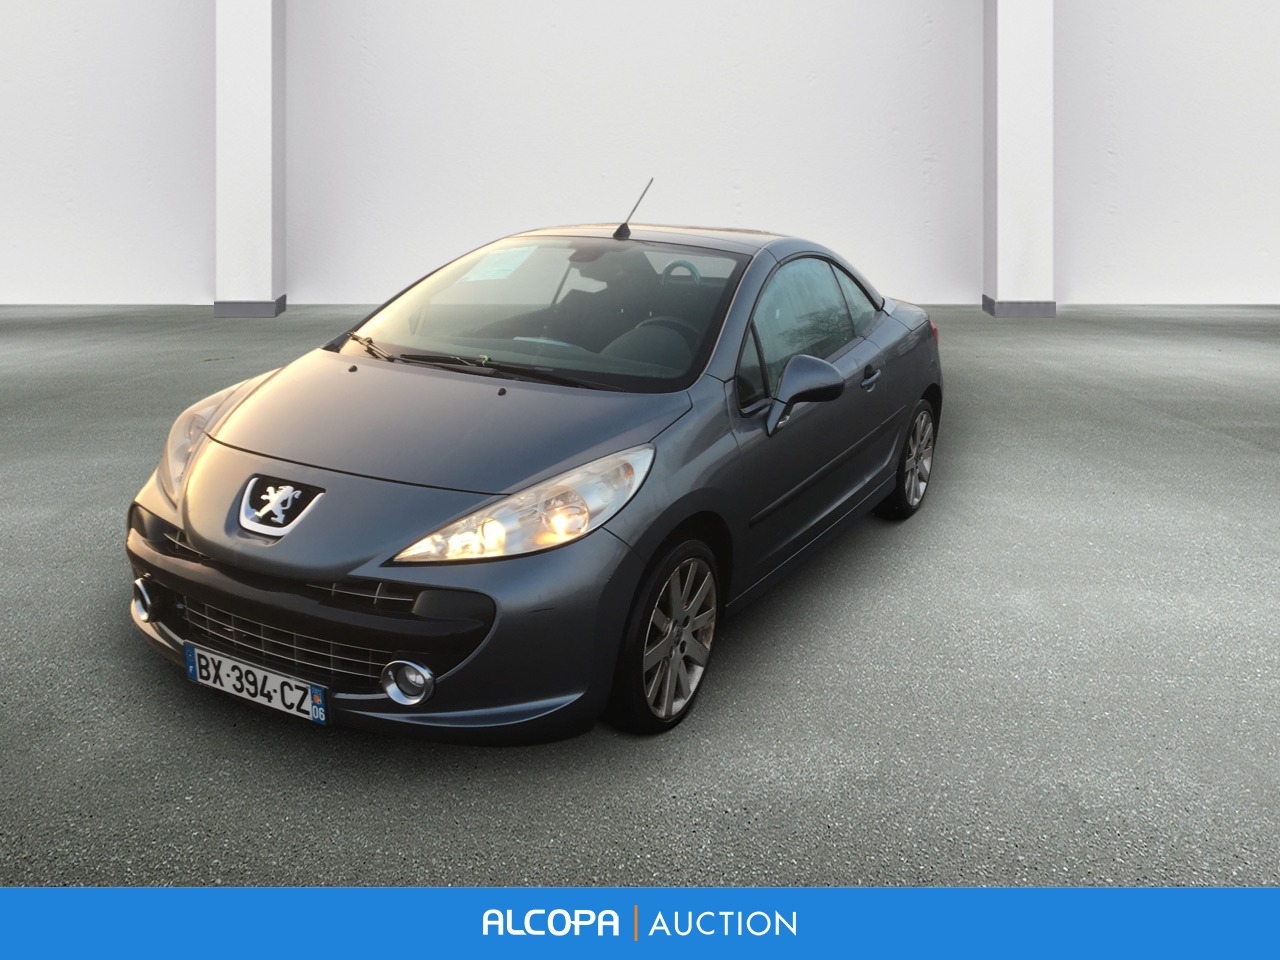 peugeot 207 cc 207 cc 1 6 vti 16v 120ch sport pack alcopa auction. Black Bedroom Furniture Sets. Home Design Ideas